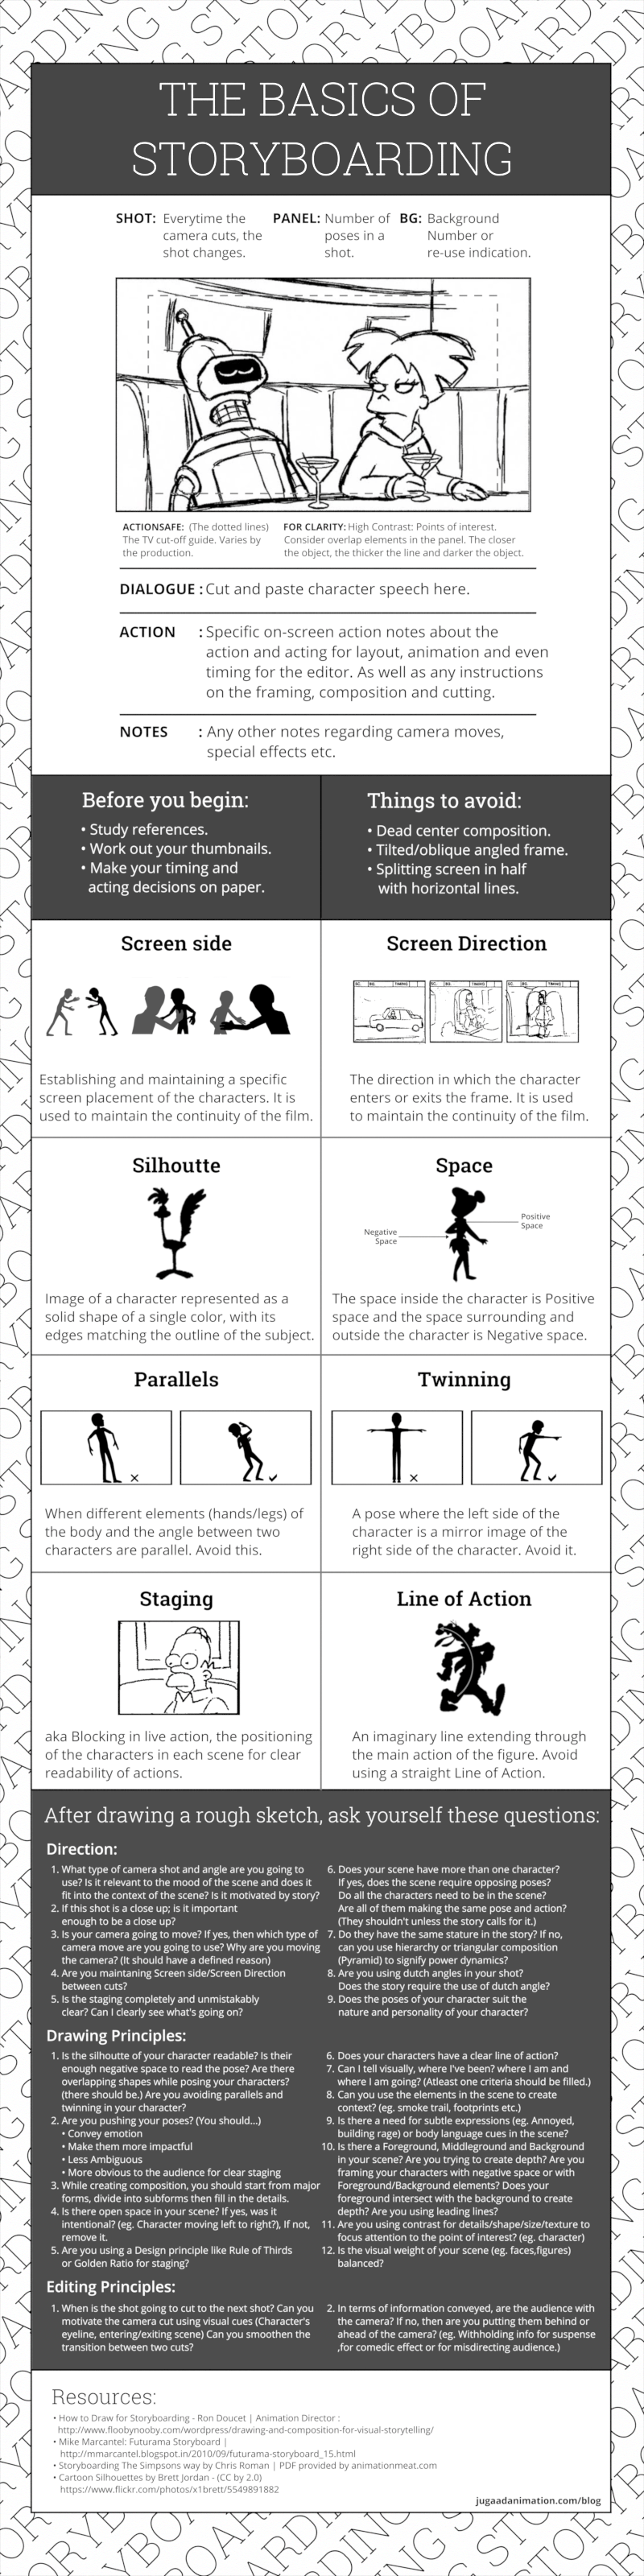 https://i0.wp.com/nofilmschool.com/sites/default/files/styles/article_superwide/public/storyboarding-basics-infographic-1-1.png